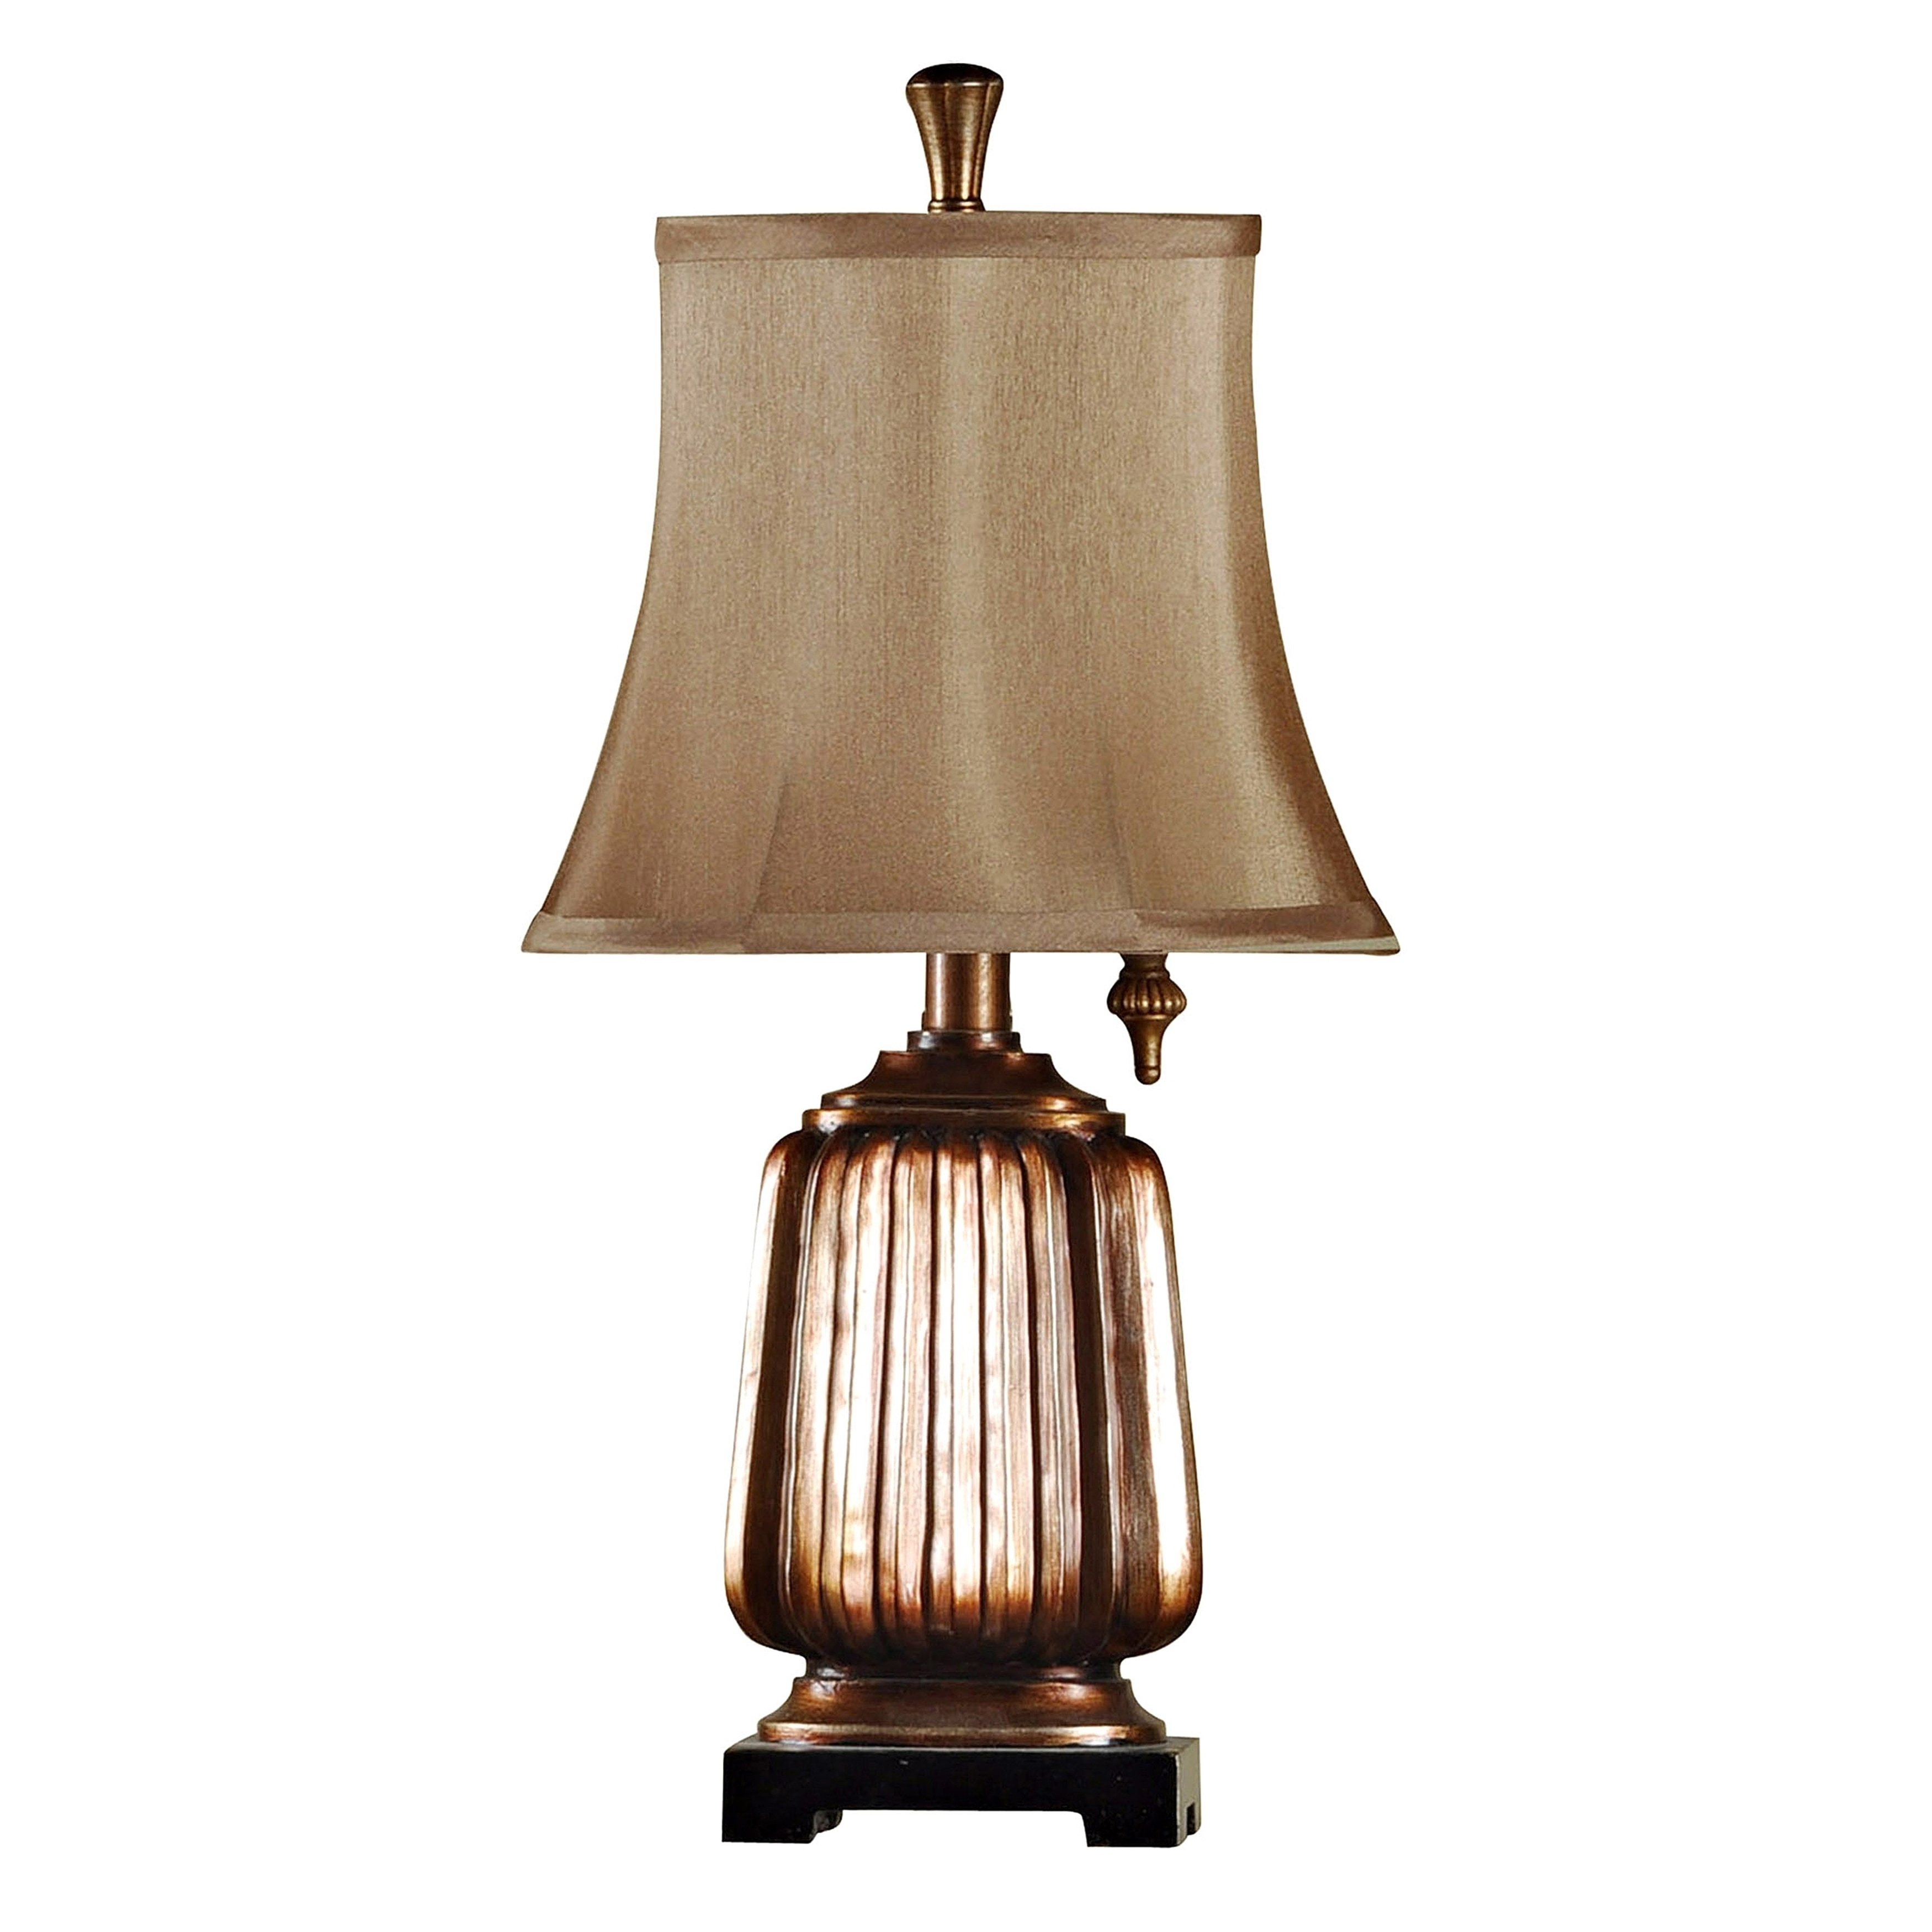 Stylecraft Antique Copper Mini Accent Table Lamp Brown Softback Fabric Shade Overstock 20874939